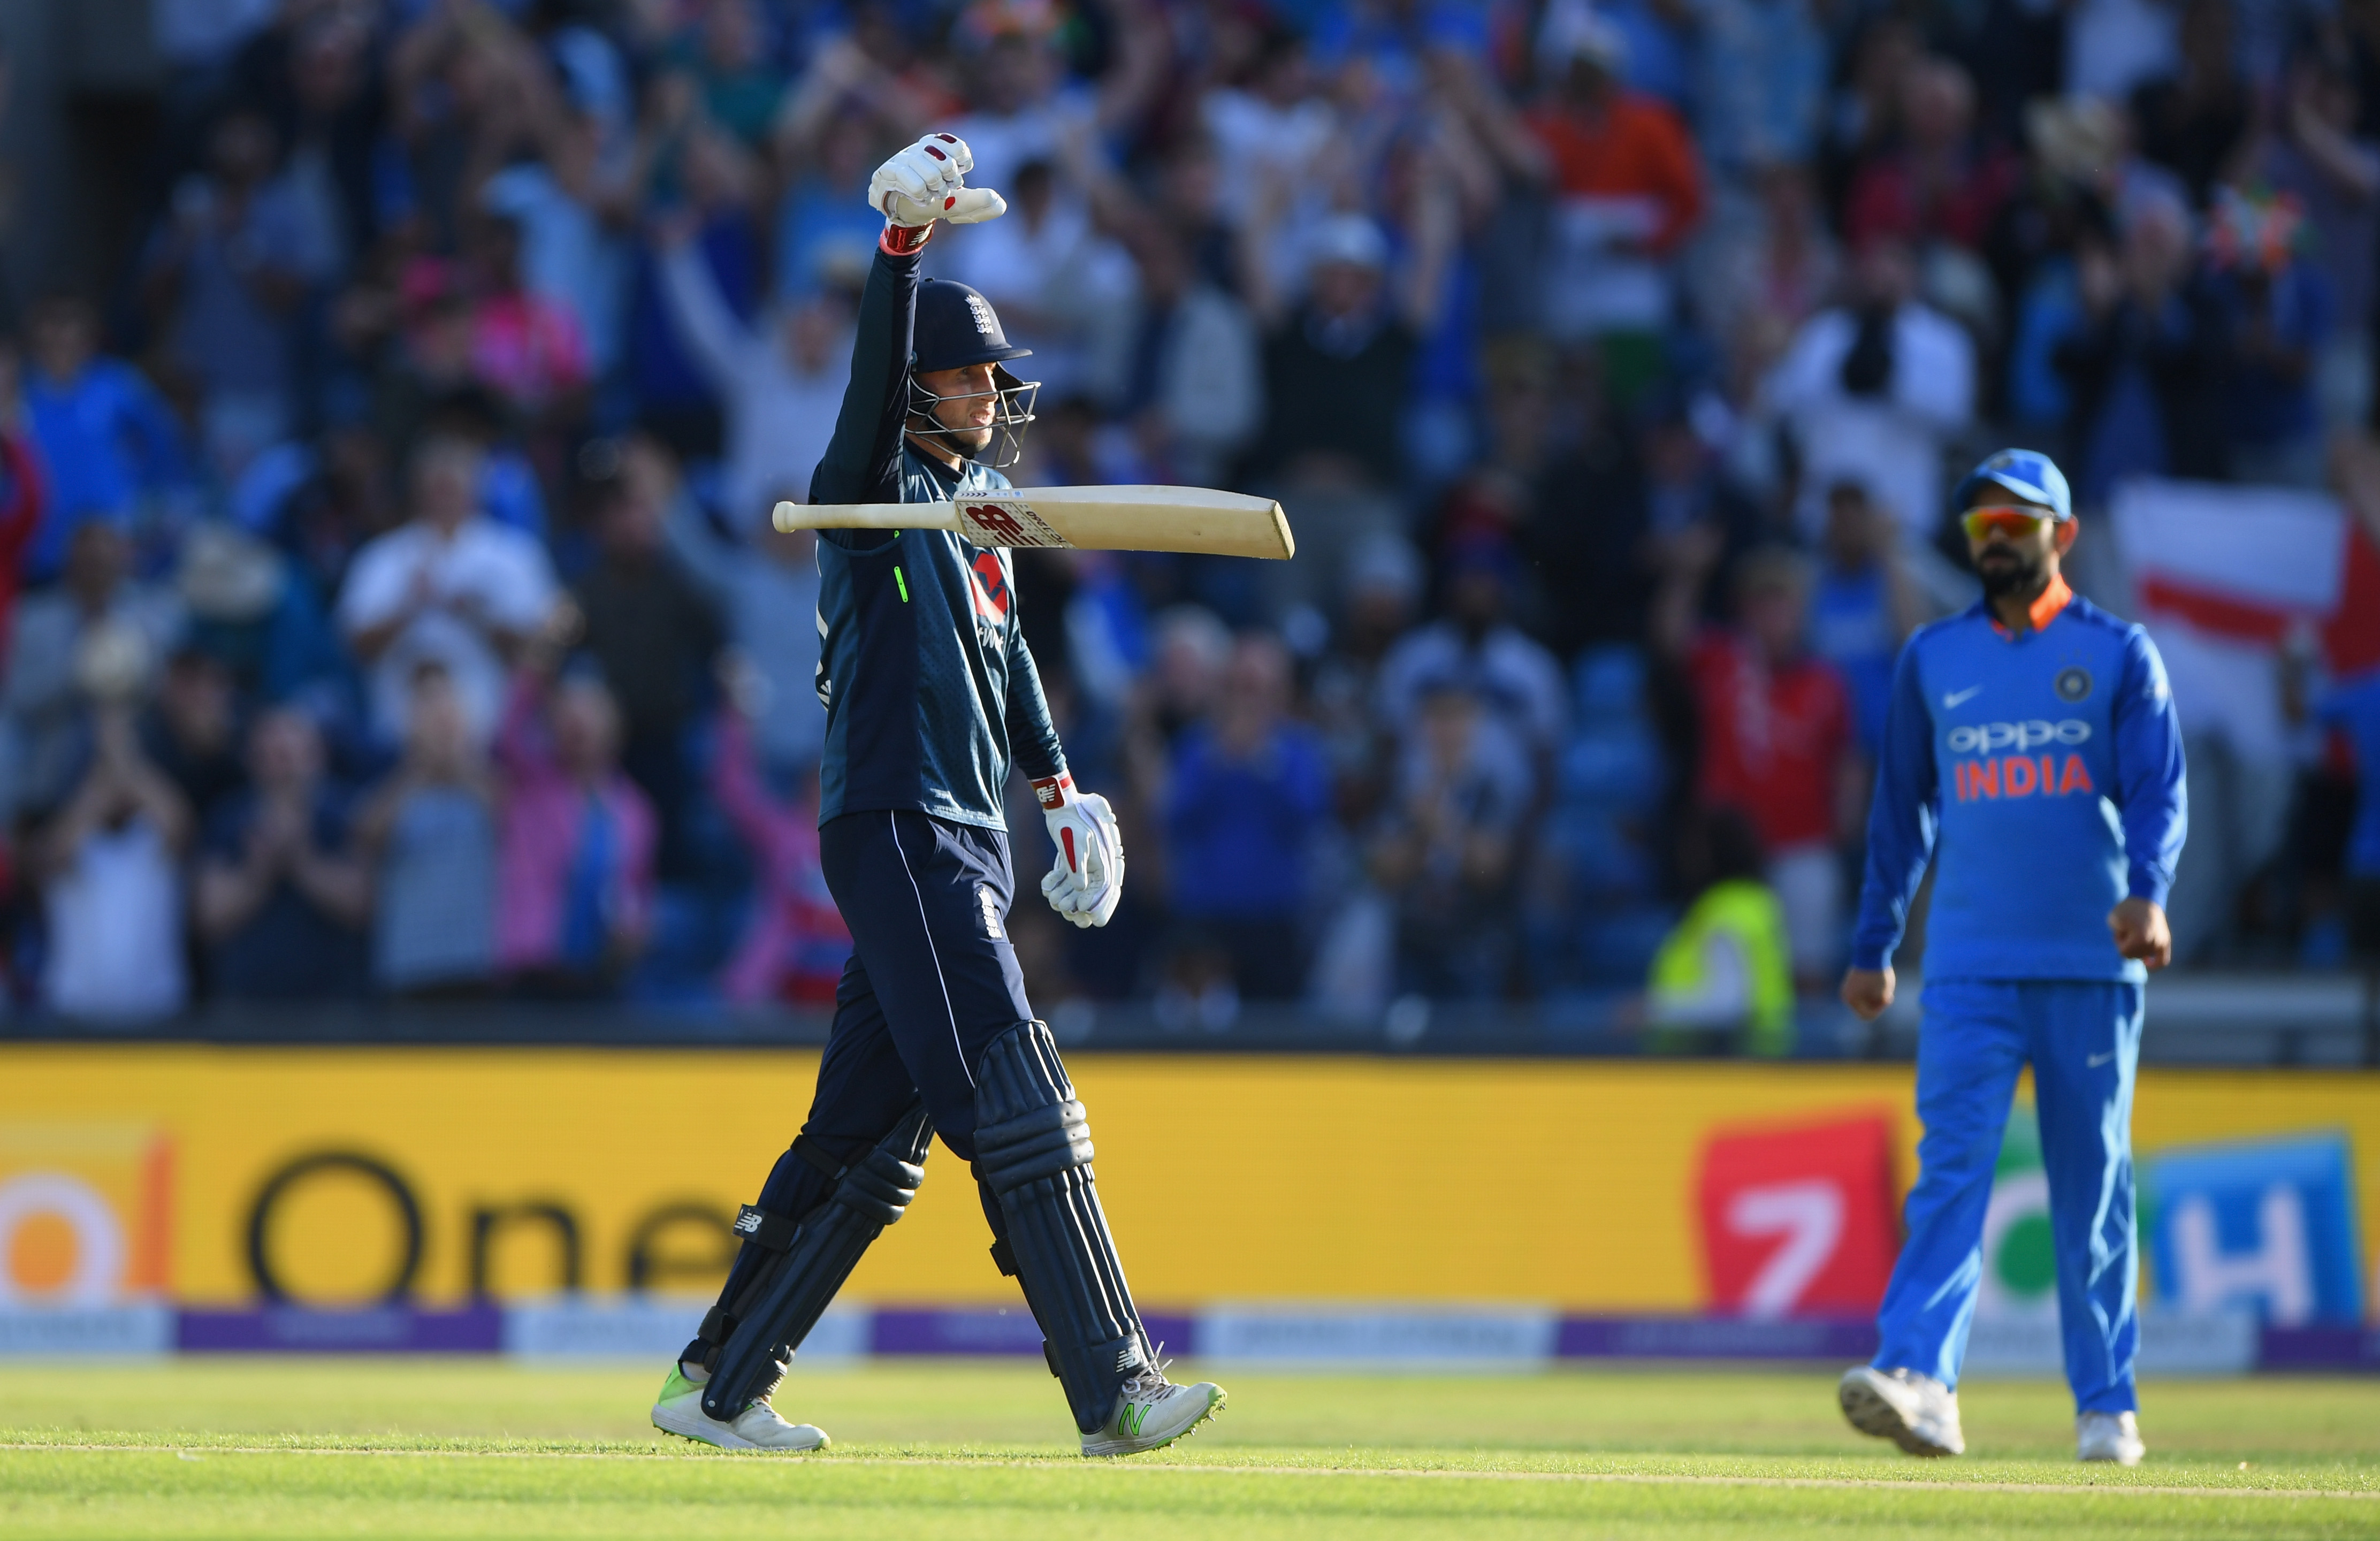 Joe Root celebrated his hundred with drop the mic gesture. (Getty)